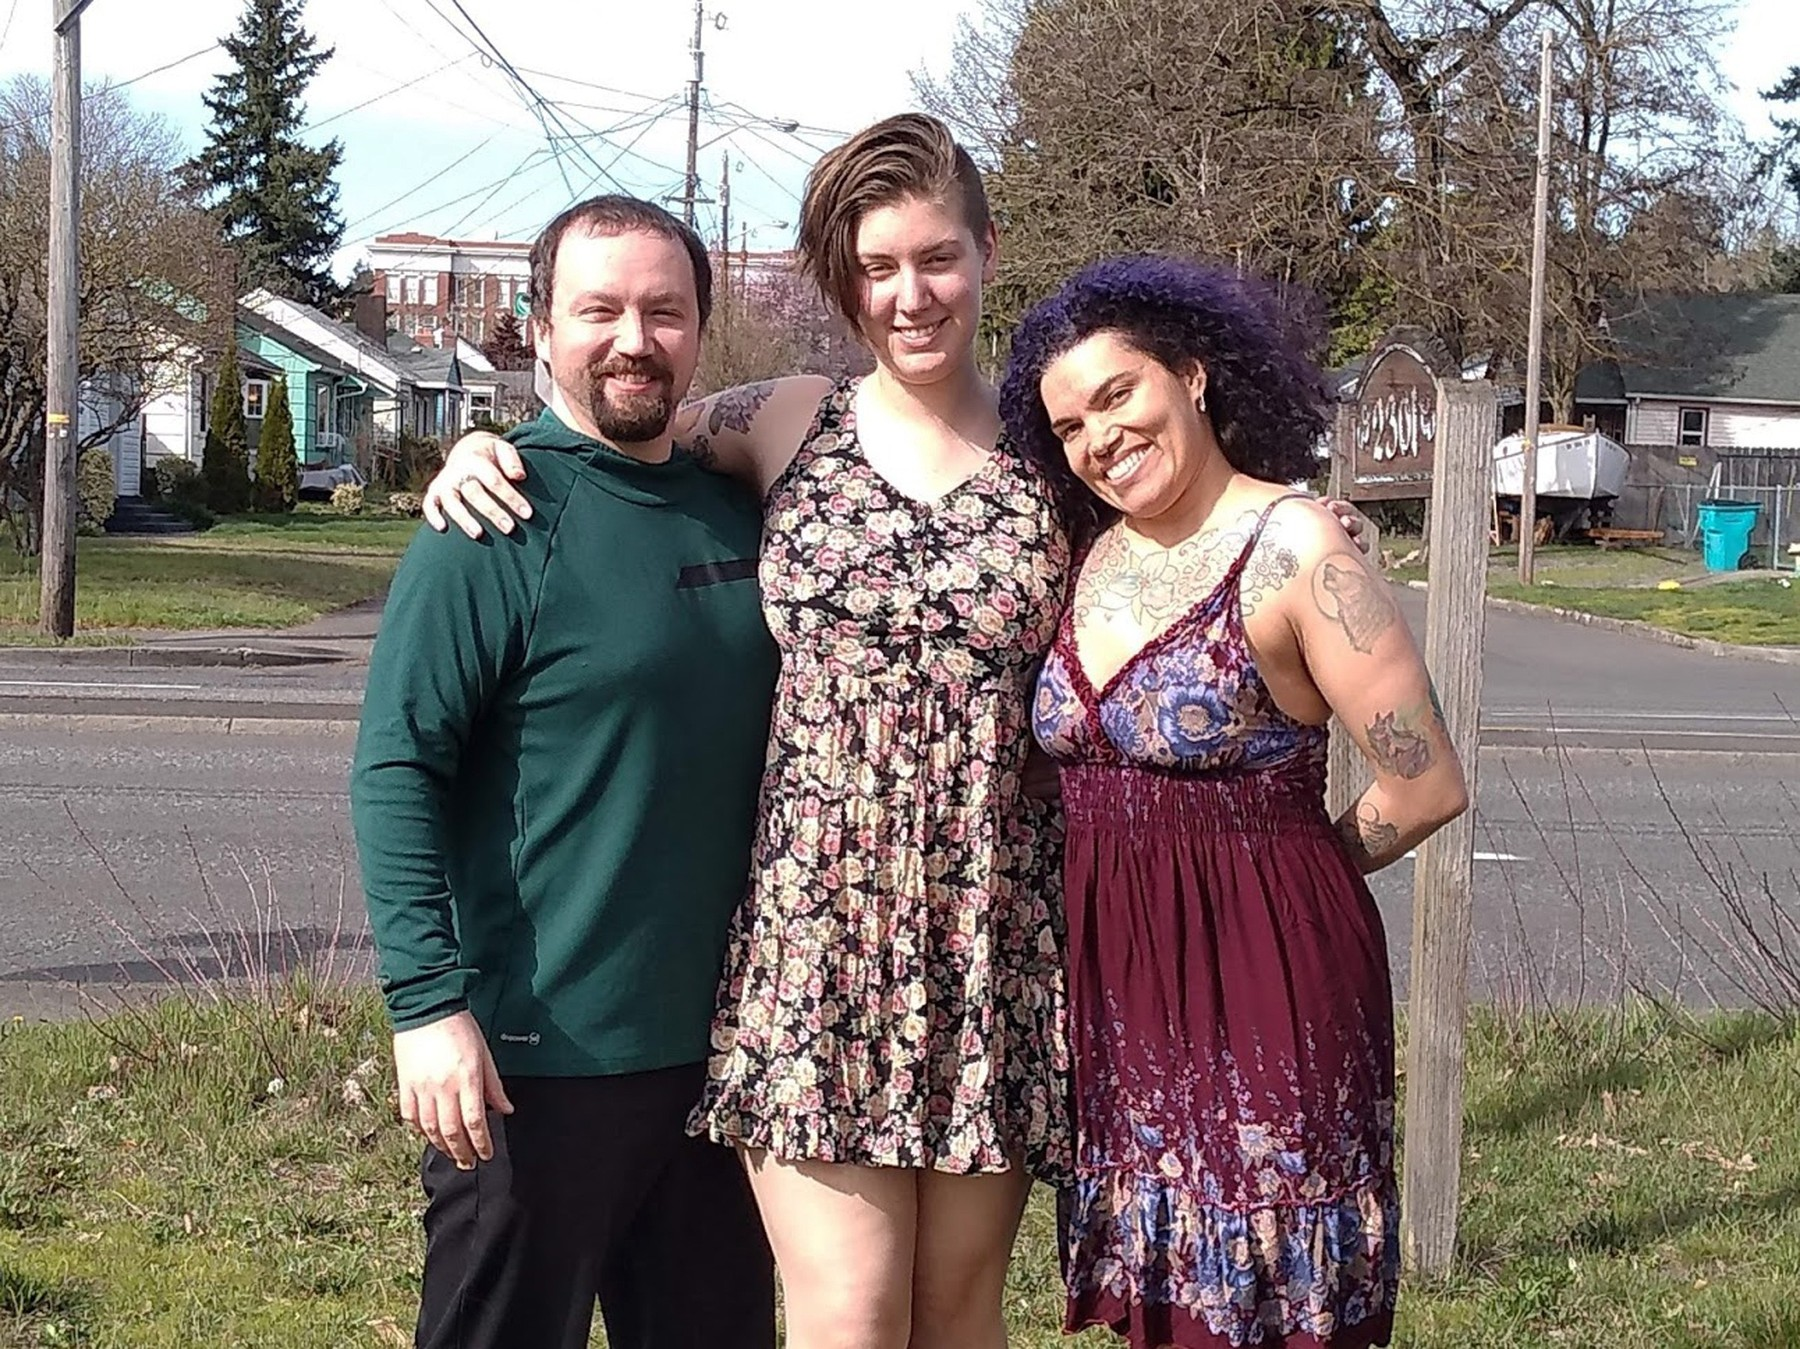 POLYAMOROUS WOMAN REVEALS HER AND HUBBY SLEEP WITH THEIR 'FIANCE' IN KING SIZE BED - IN PIC - (L-R) Anthony Miller, now 37, Ashley Welp, now 24, and Ava Miller, now 40, pictured in 2019. - A woman has revealed she is in a polyamorous relationship with her husband and 'fiancéâ. Ava Miller, 40, of Washington State, USA, had been married to husband, Anthony Miller, 37, for 16 years, until they decided to invite Ashley Welp, 24, into their marriage. Now the trio share a king-sized bed, and Ashley has become an 'aunt' to Ava and Anthony's two young sons. While some may find their marriage unconventional, Ava insists the polyamorous group have never felt happier.SEE HOTSPOT MEDIA COPY 0121 551 1004, Image: 440390435, License: Rights-managed, Restrictions: , Model Release: no, Credit line: HotSpot Media / HotSpot Media / Profimedia